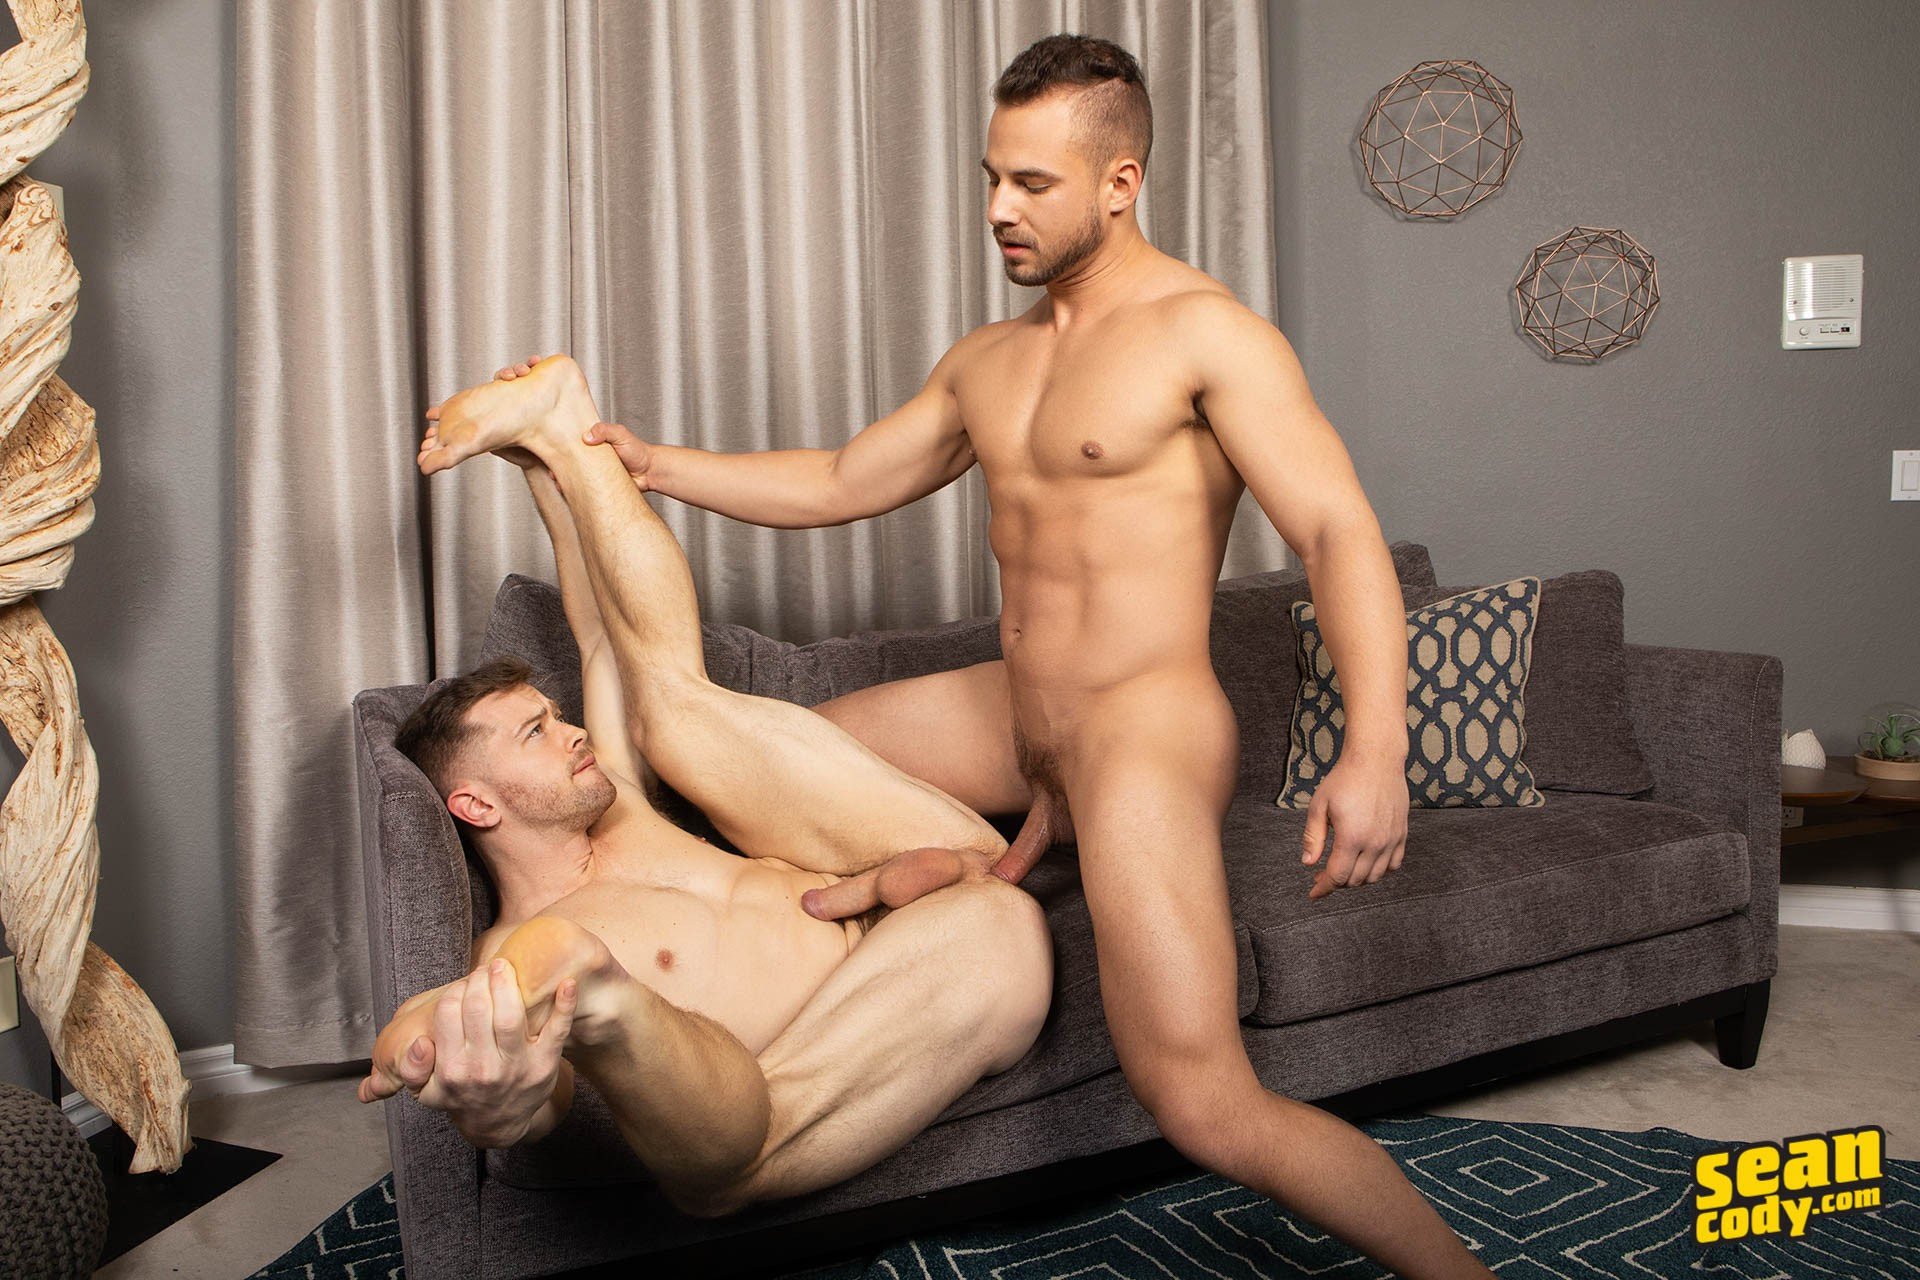 Sexy gay studs from Sean Cody